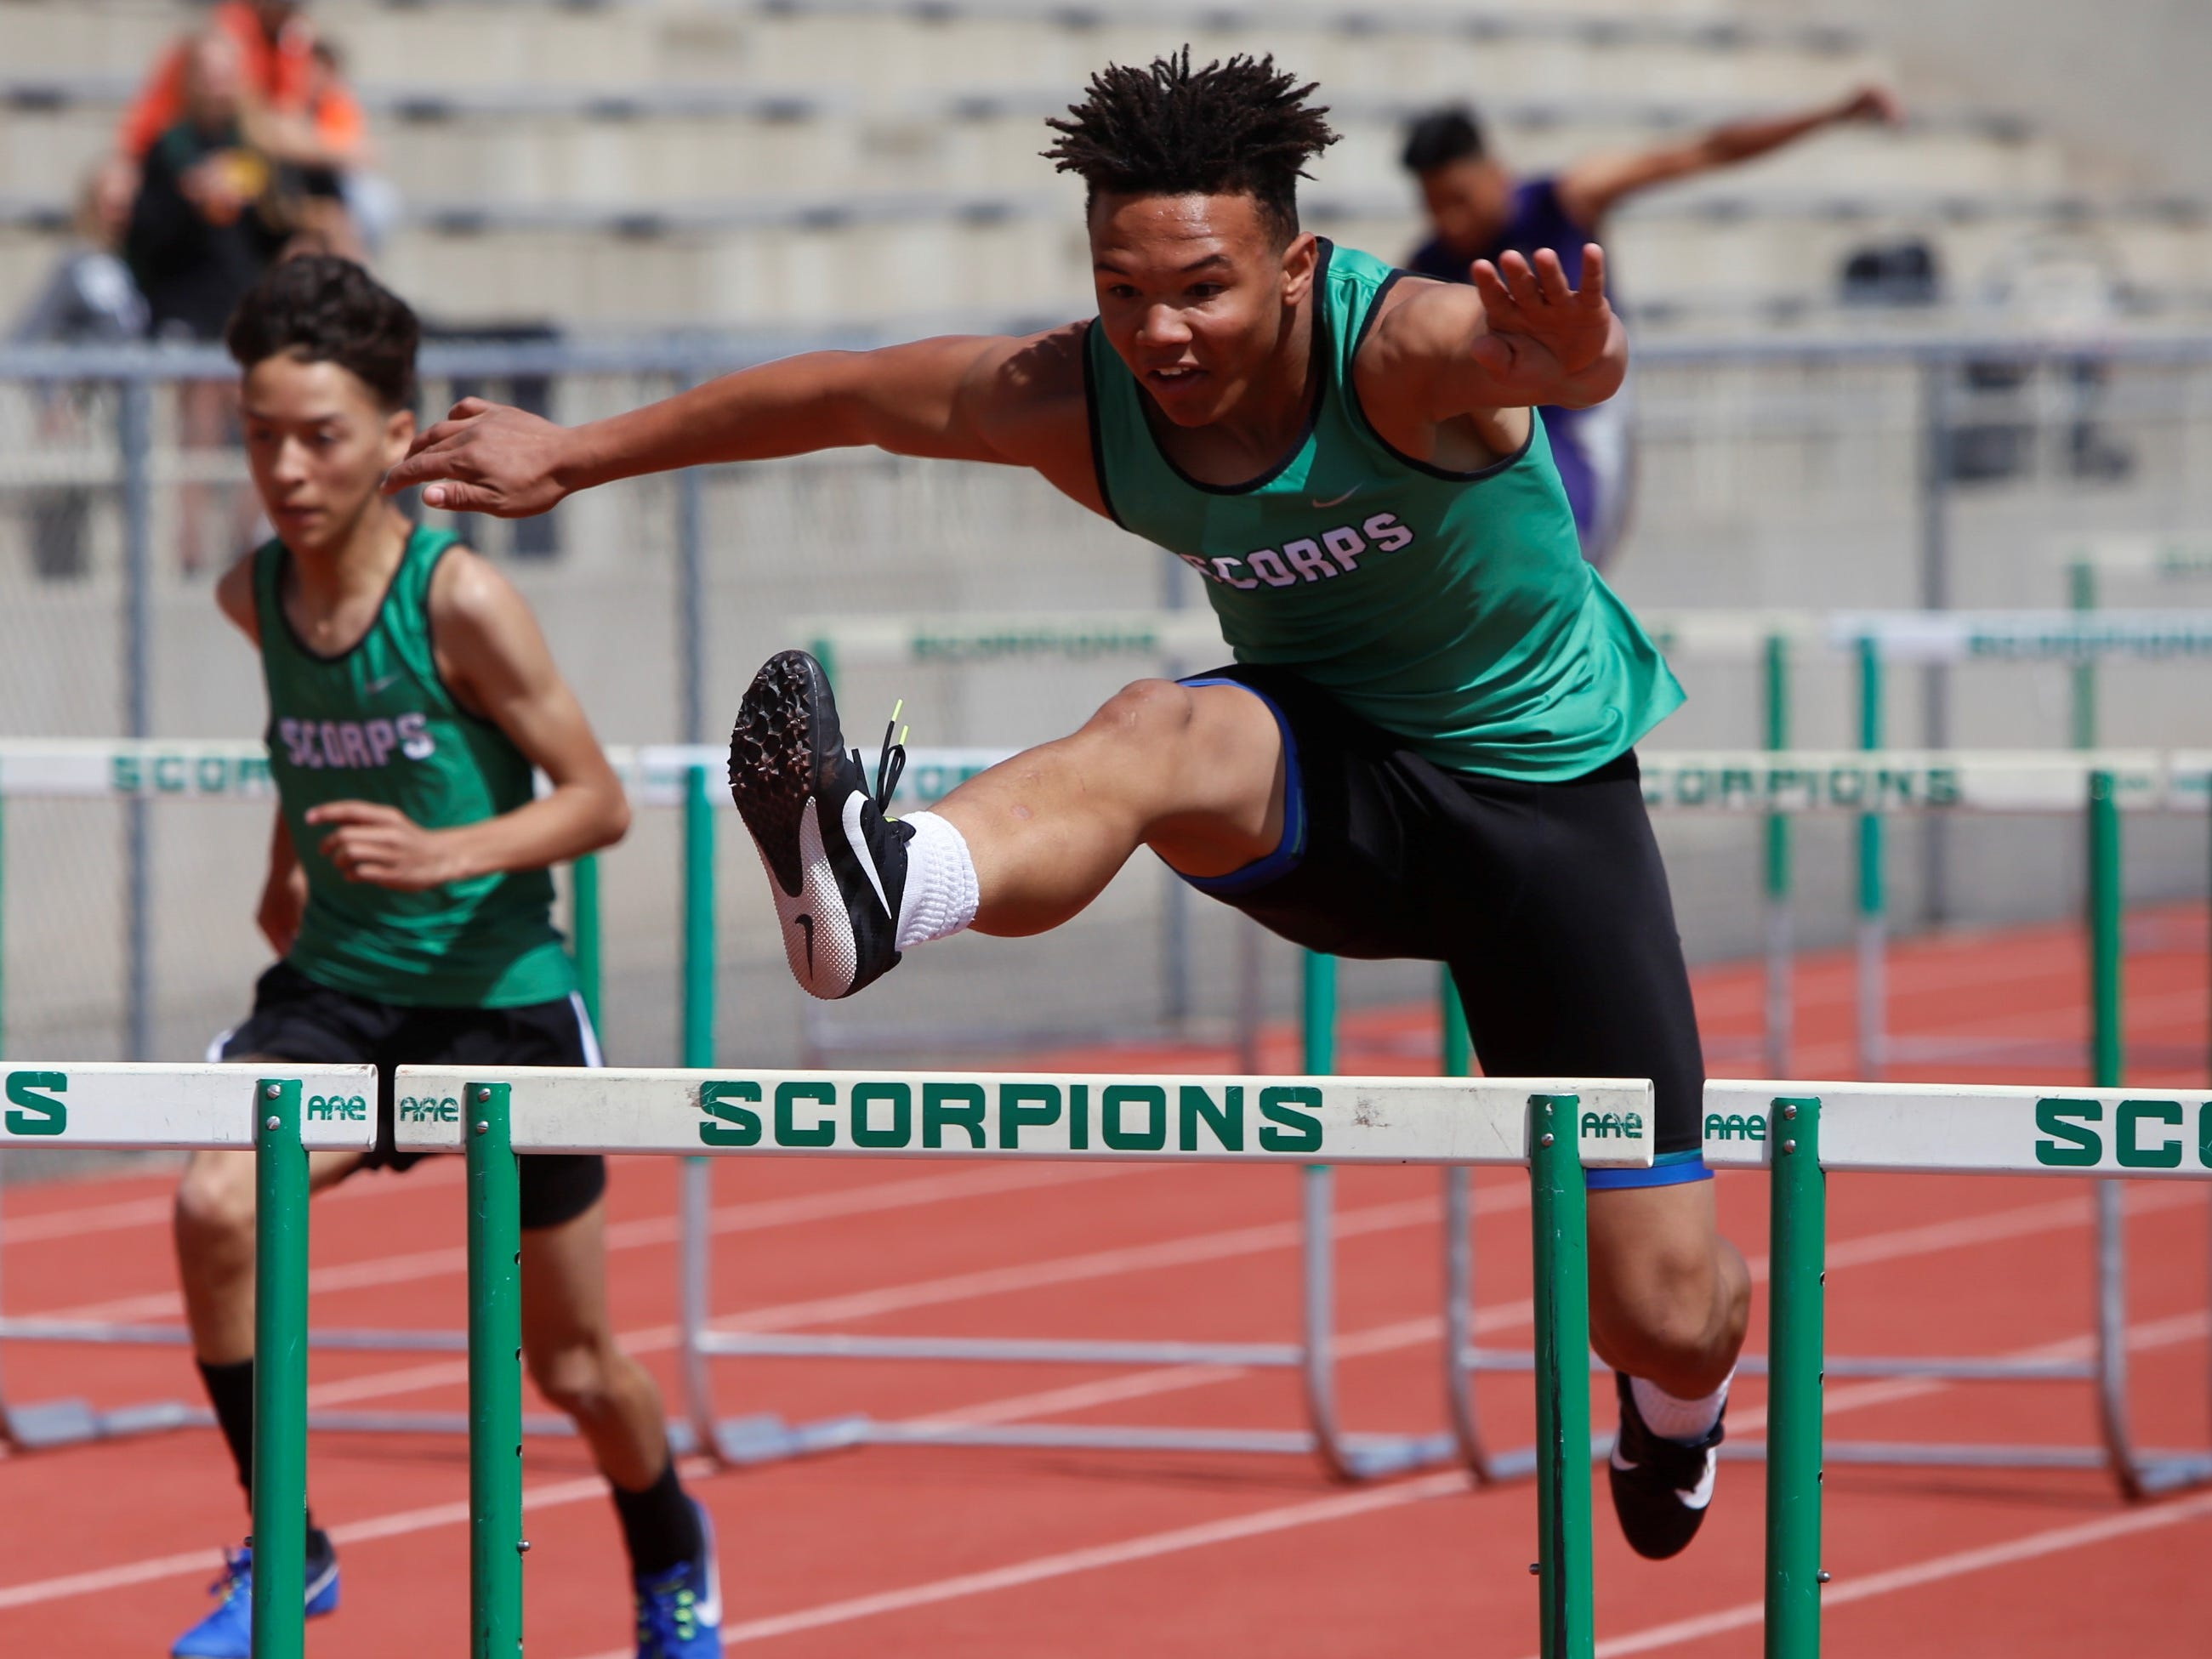 Farmington's Jackie Dunning jumps over the hurdle in the first heat of the boys 110-meter hurdles during Saturday's FHS Invitational at Hutchison Stadium.